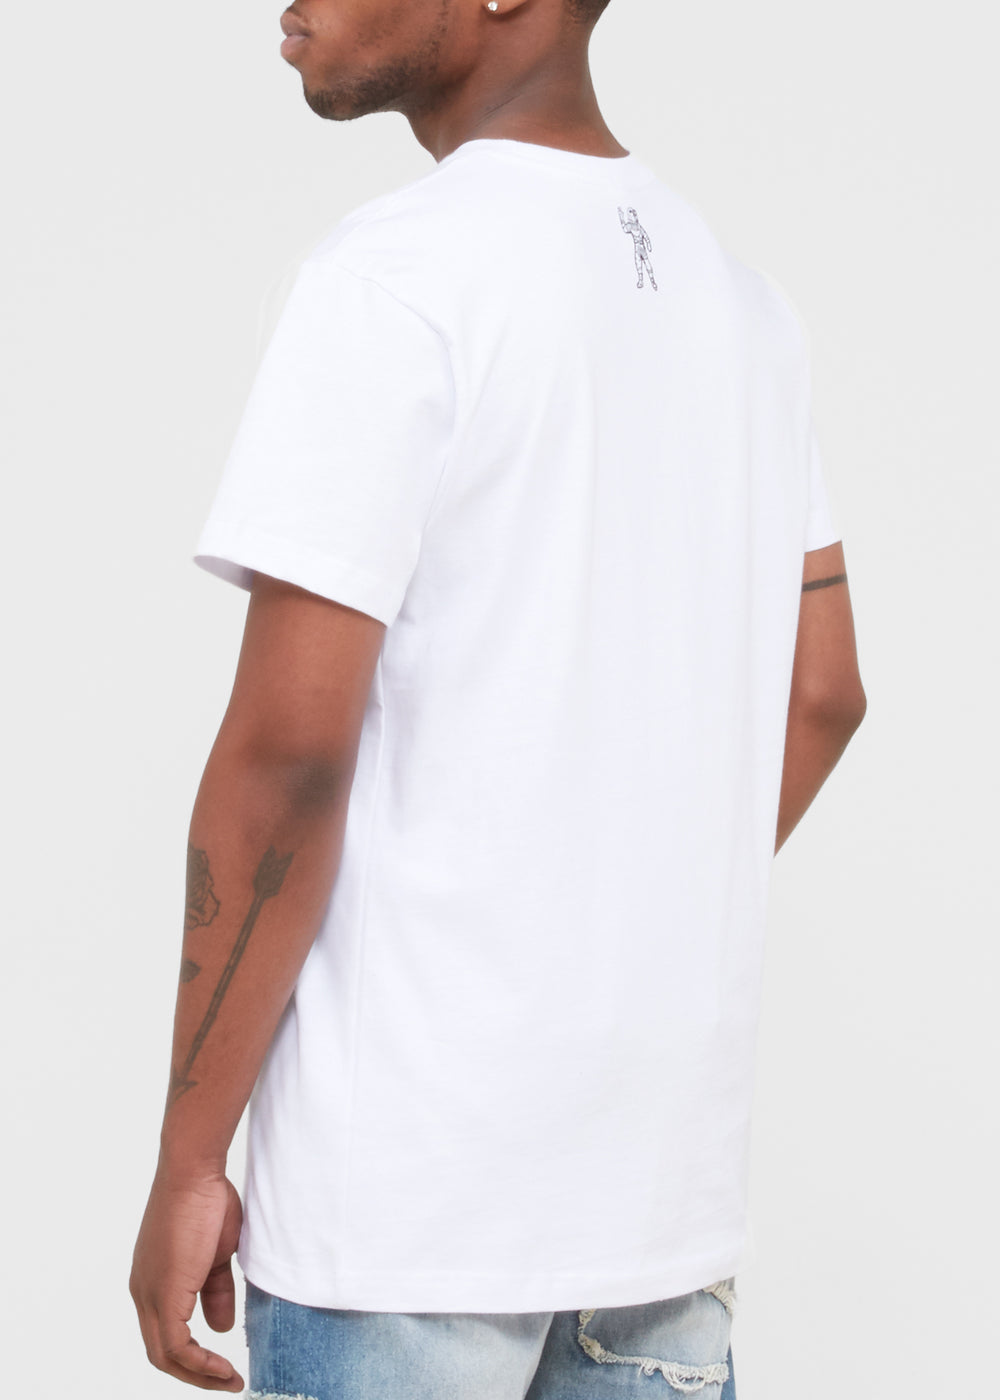 billionaire-boys-club-bbc-greetings-ss-tee-891-8206-wht-wht-3